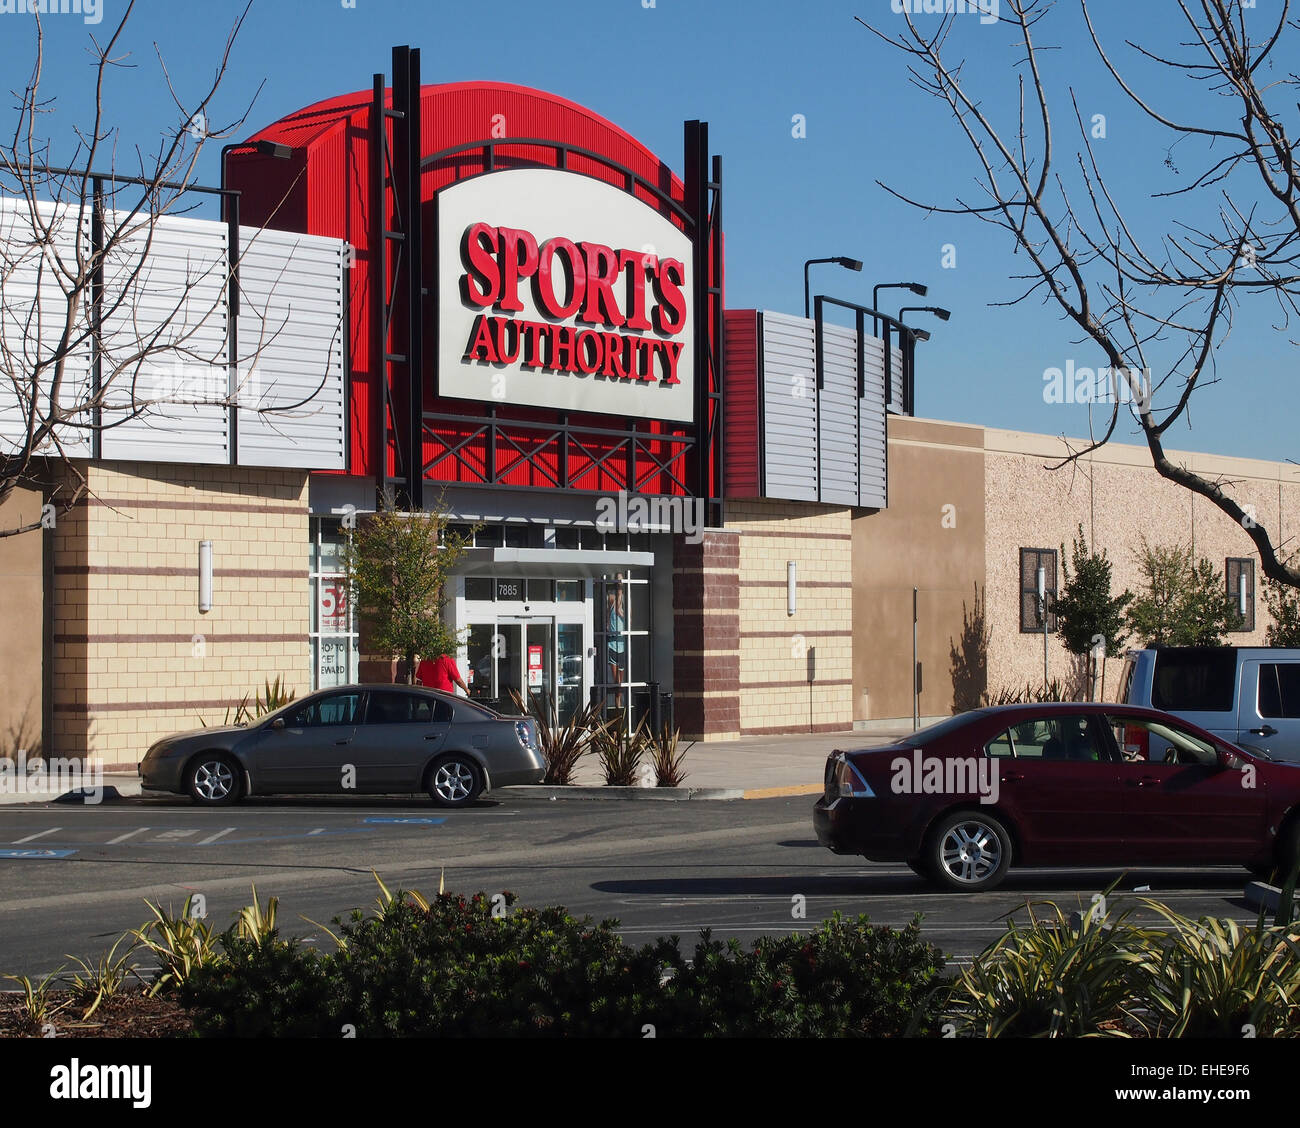 Sports Authority store  East Bay, California, USA Stock